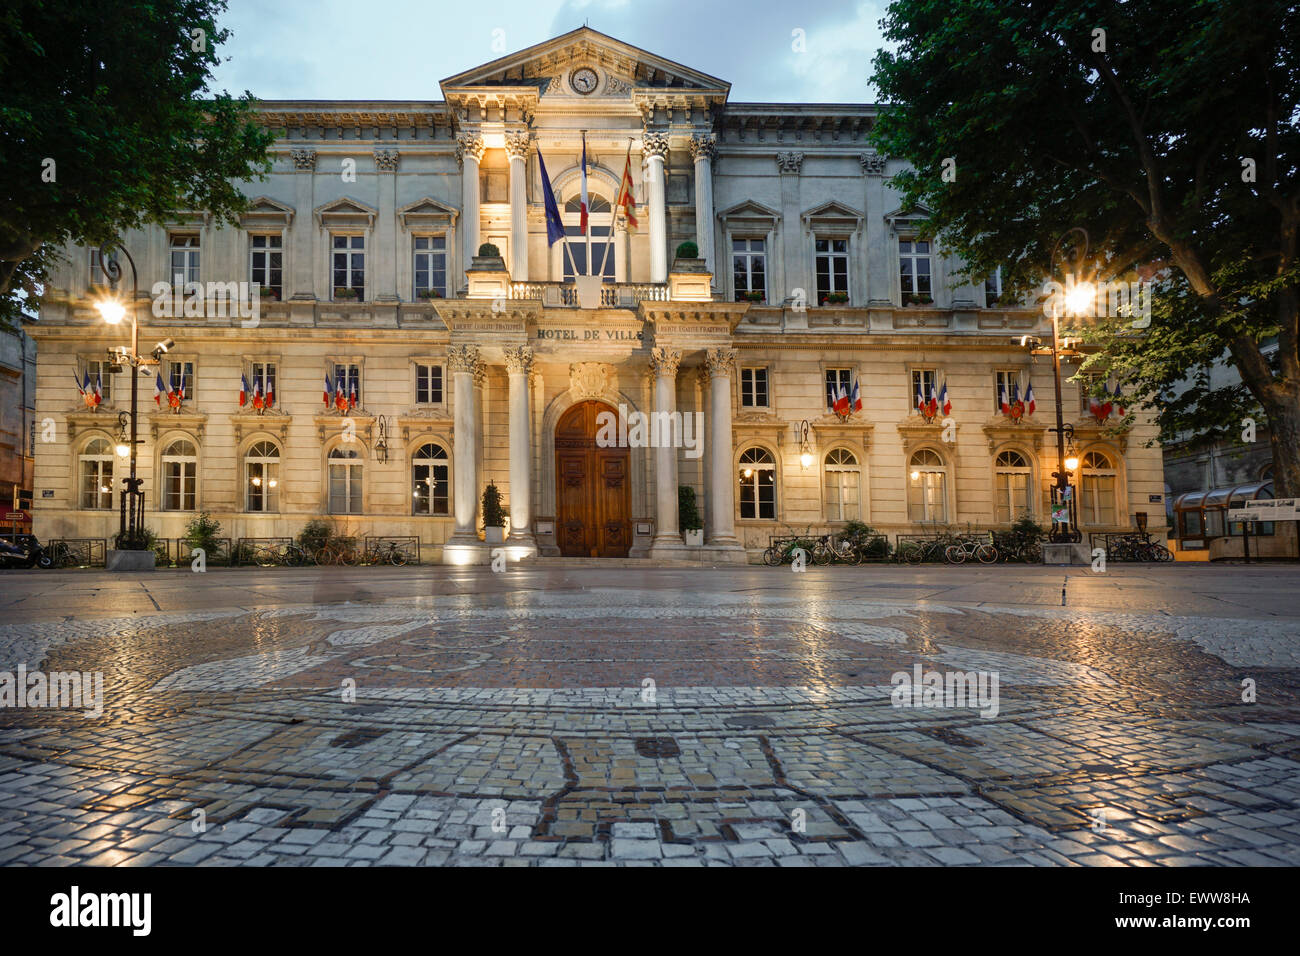 Hotel de Ville, Cobble Stone Mosaic, Avignon, Bouche du Rhone, France Stock Photo